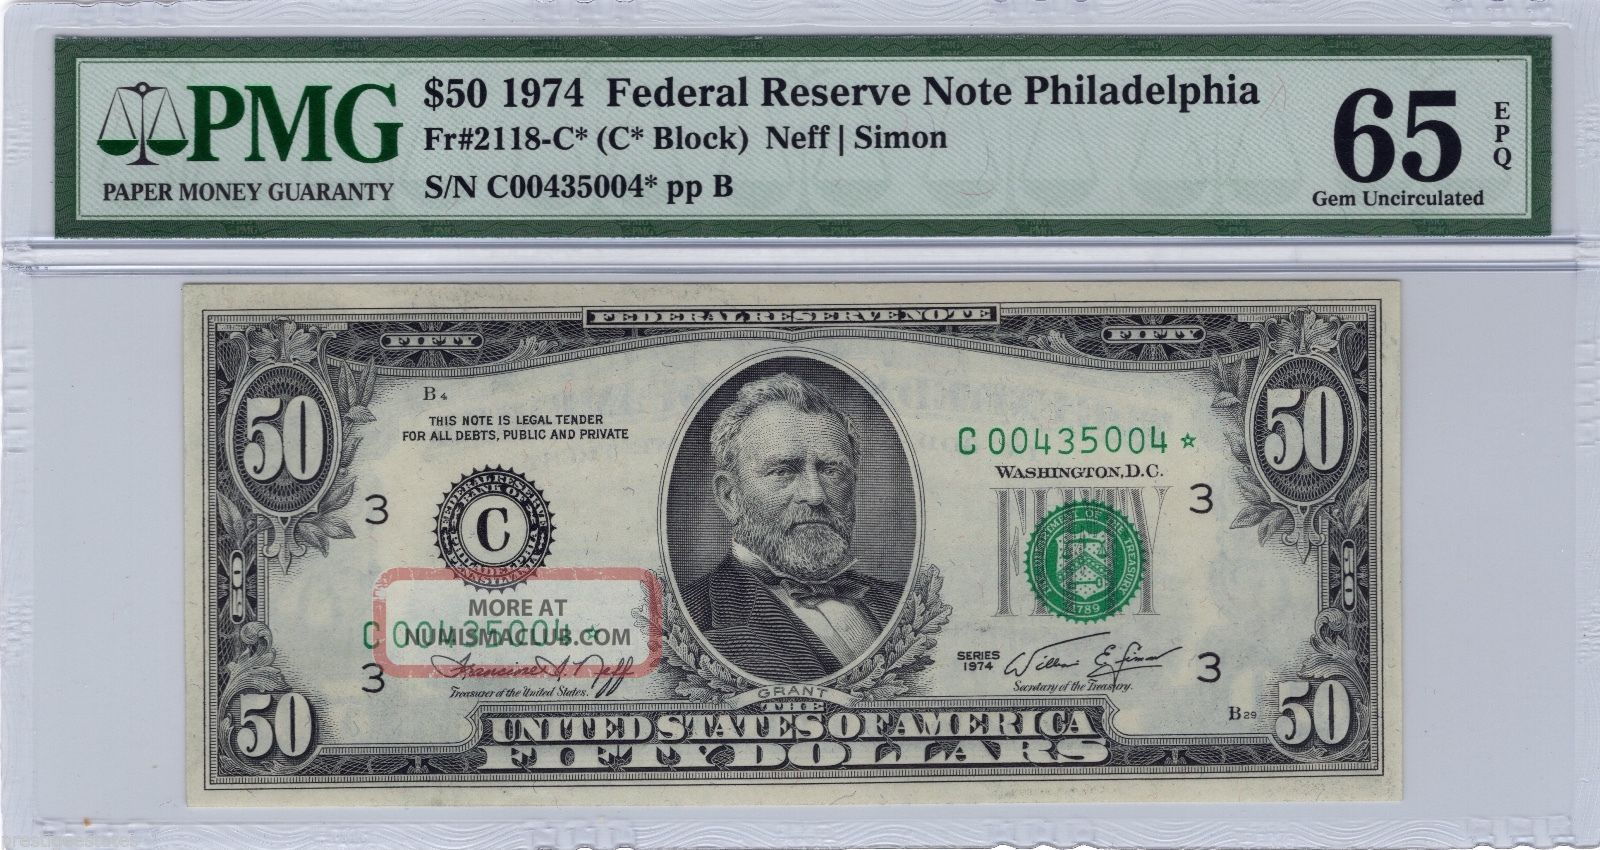 Pmg 65 Epq Gem Uncirculated 1974 $50 Federal Reserve Star Note Fr 2118 - C Small Size Notes photo